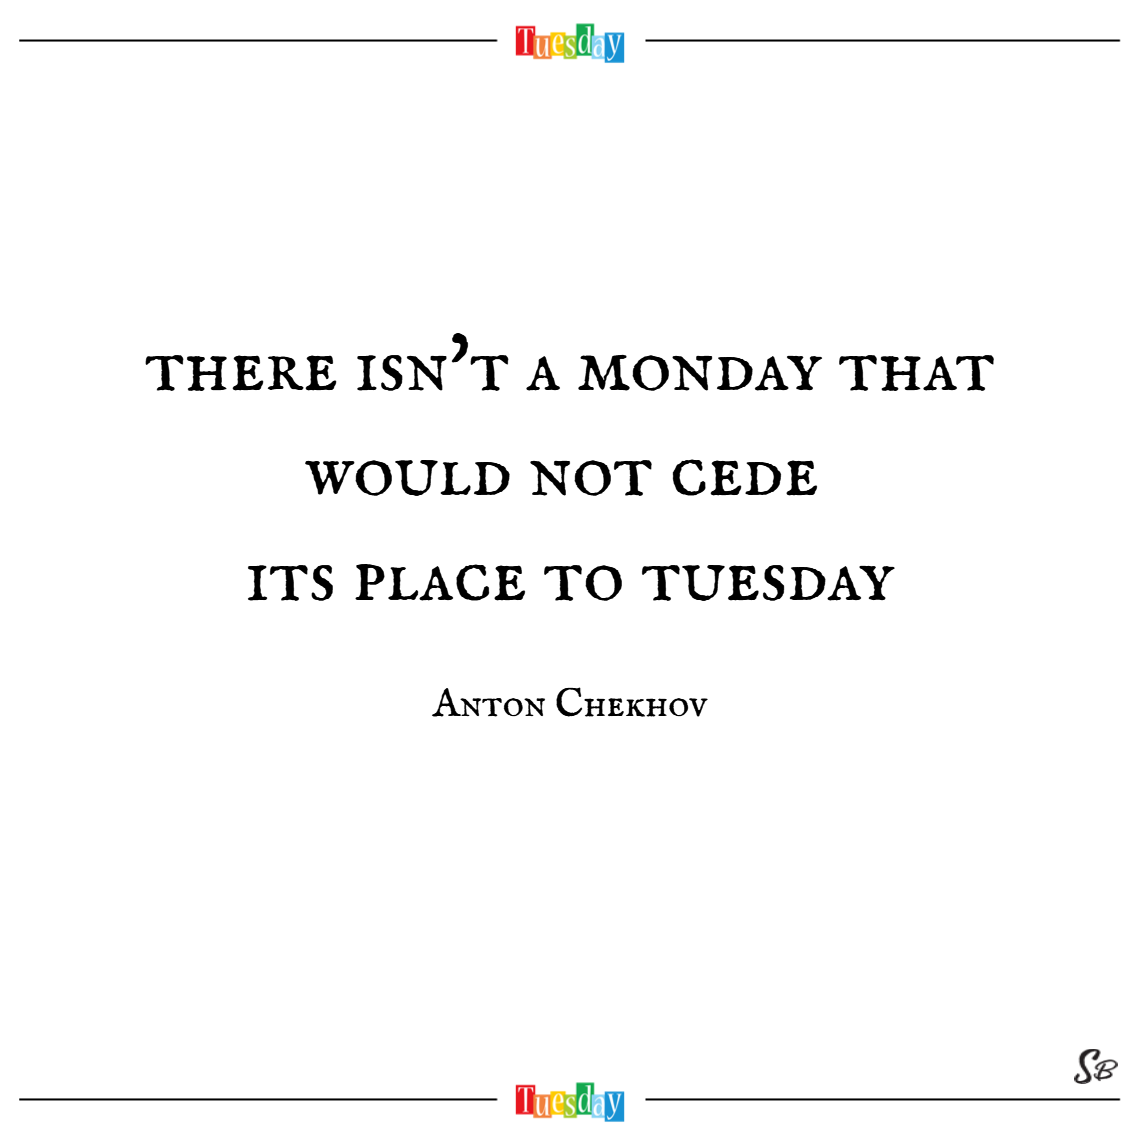 There isn't a monday that would not cede its place to tuesday. – anton chekhov